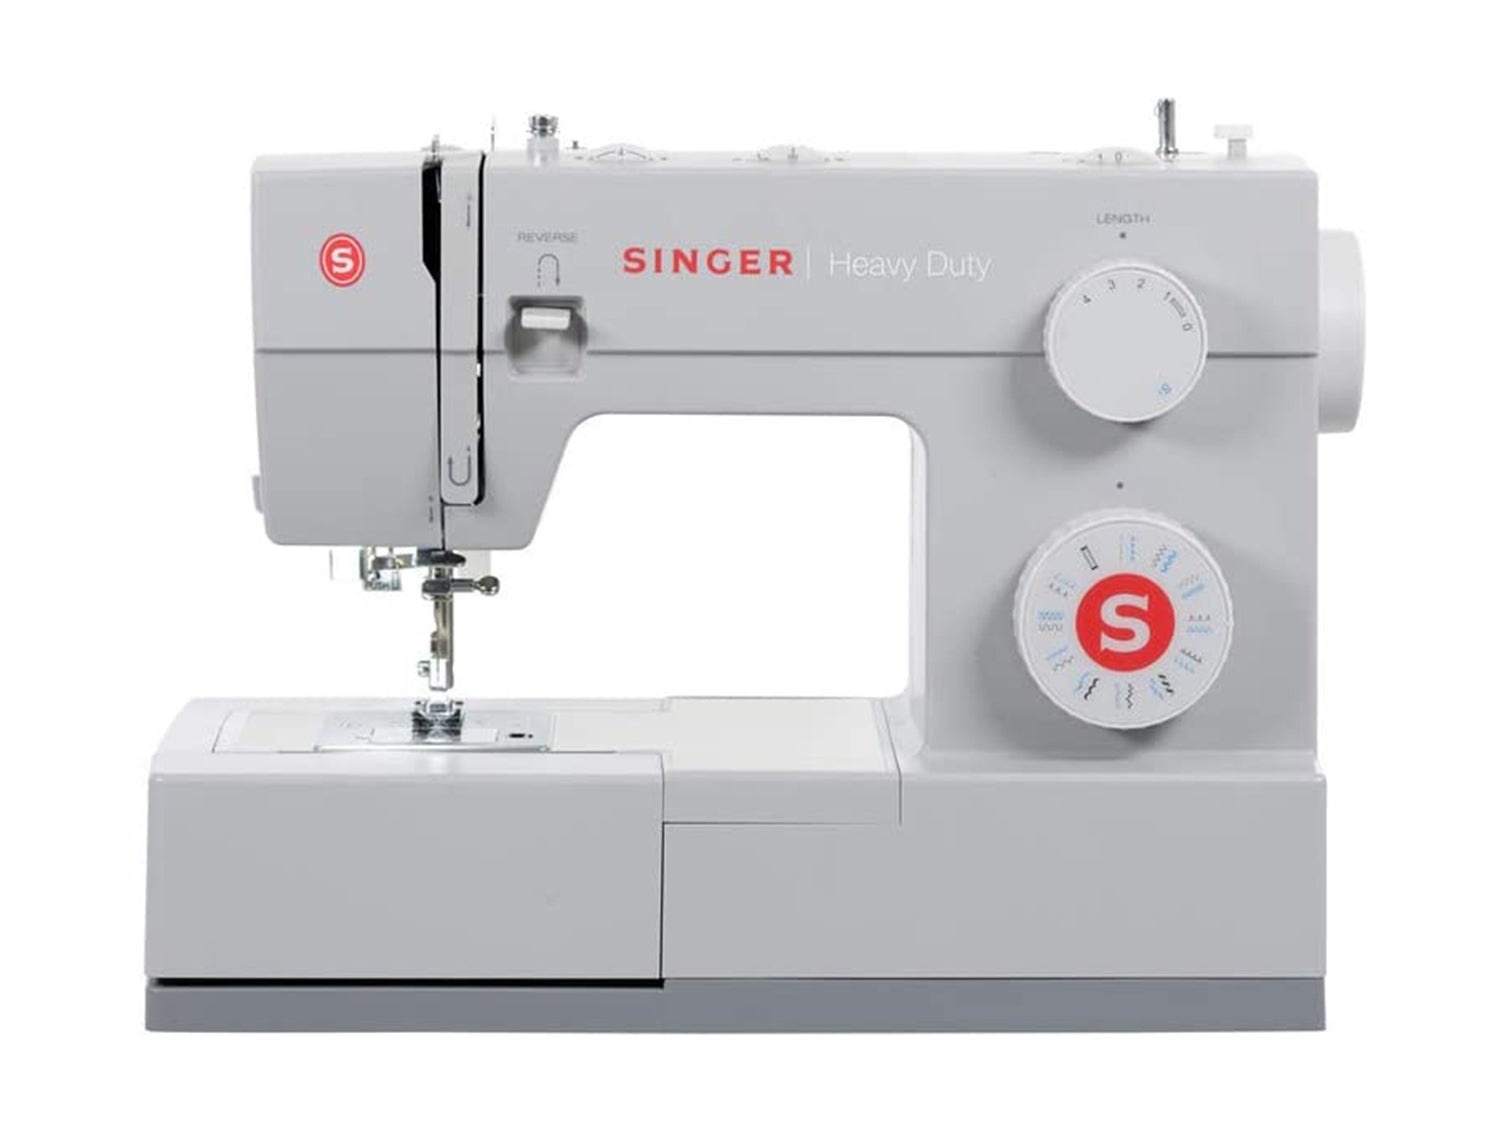 SINGER Heavy Duty 4423 Sewing Machine with 23 Built-In Stitches